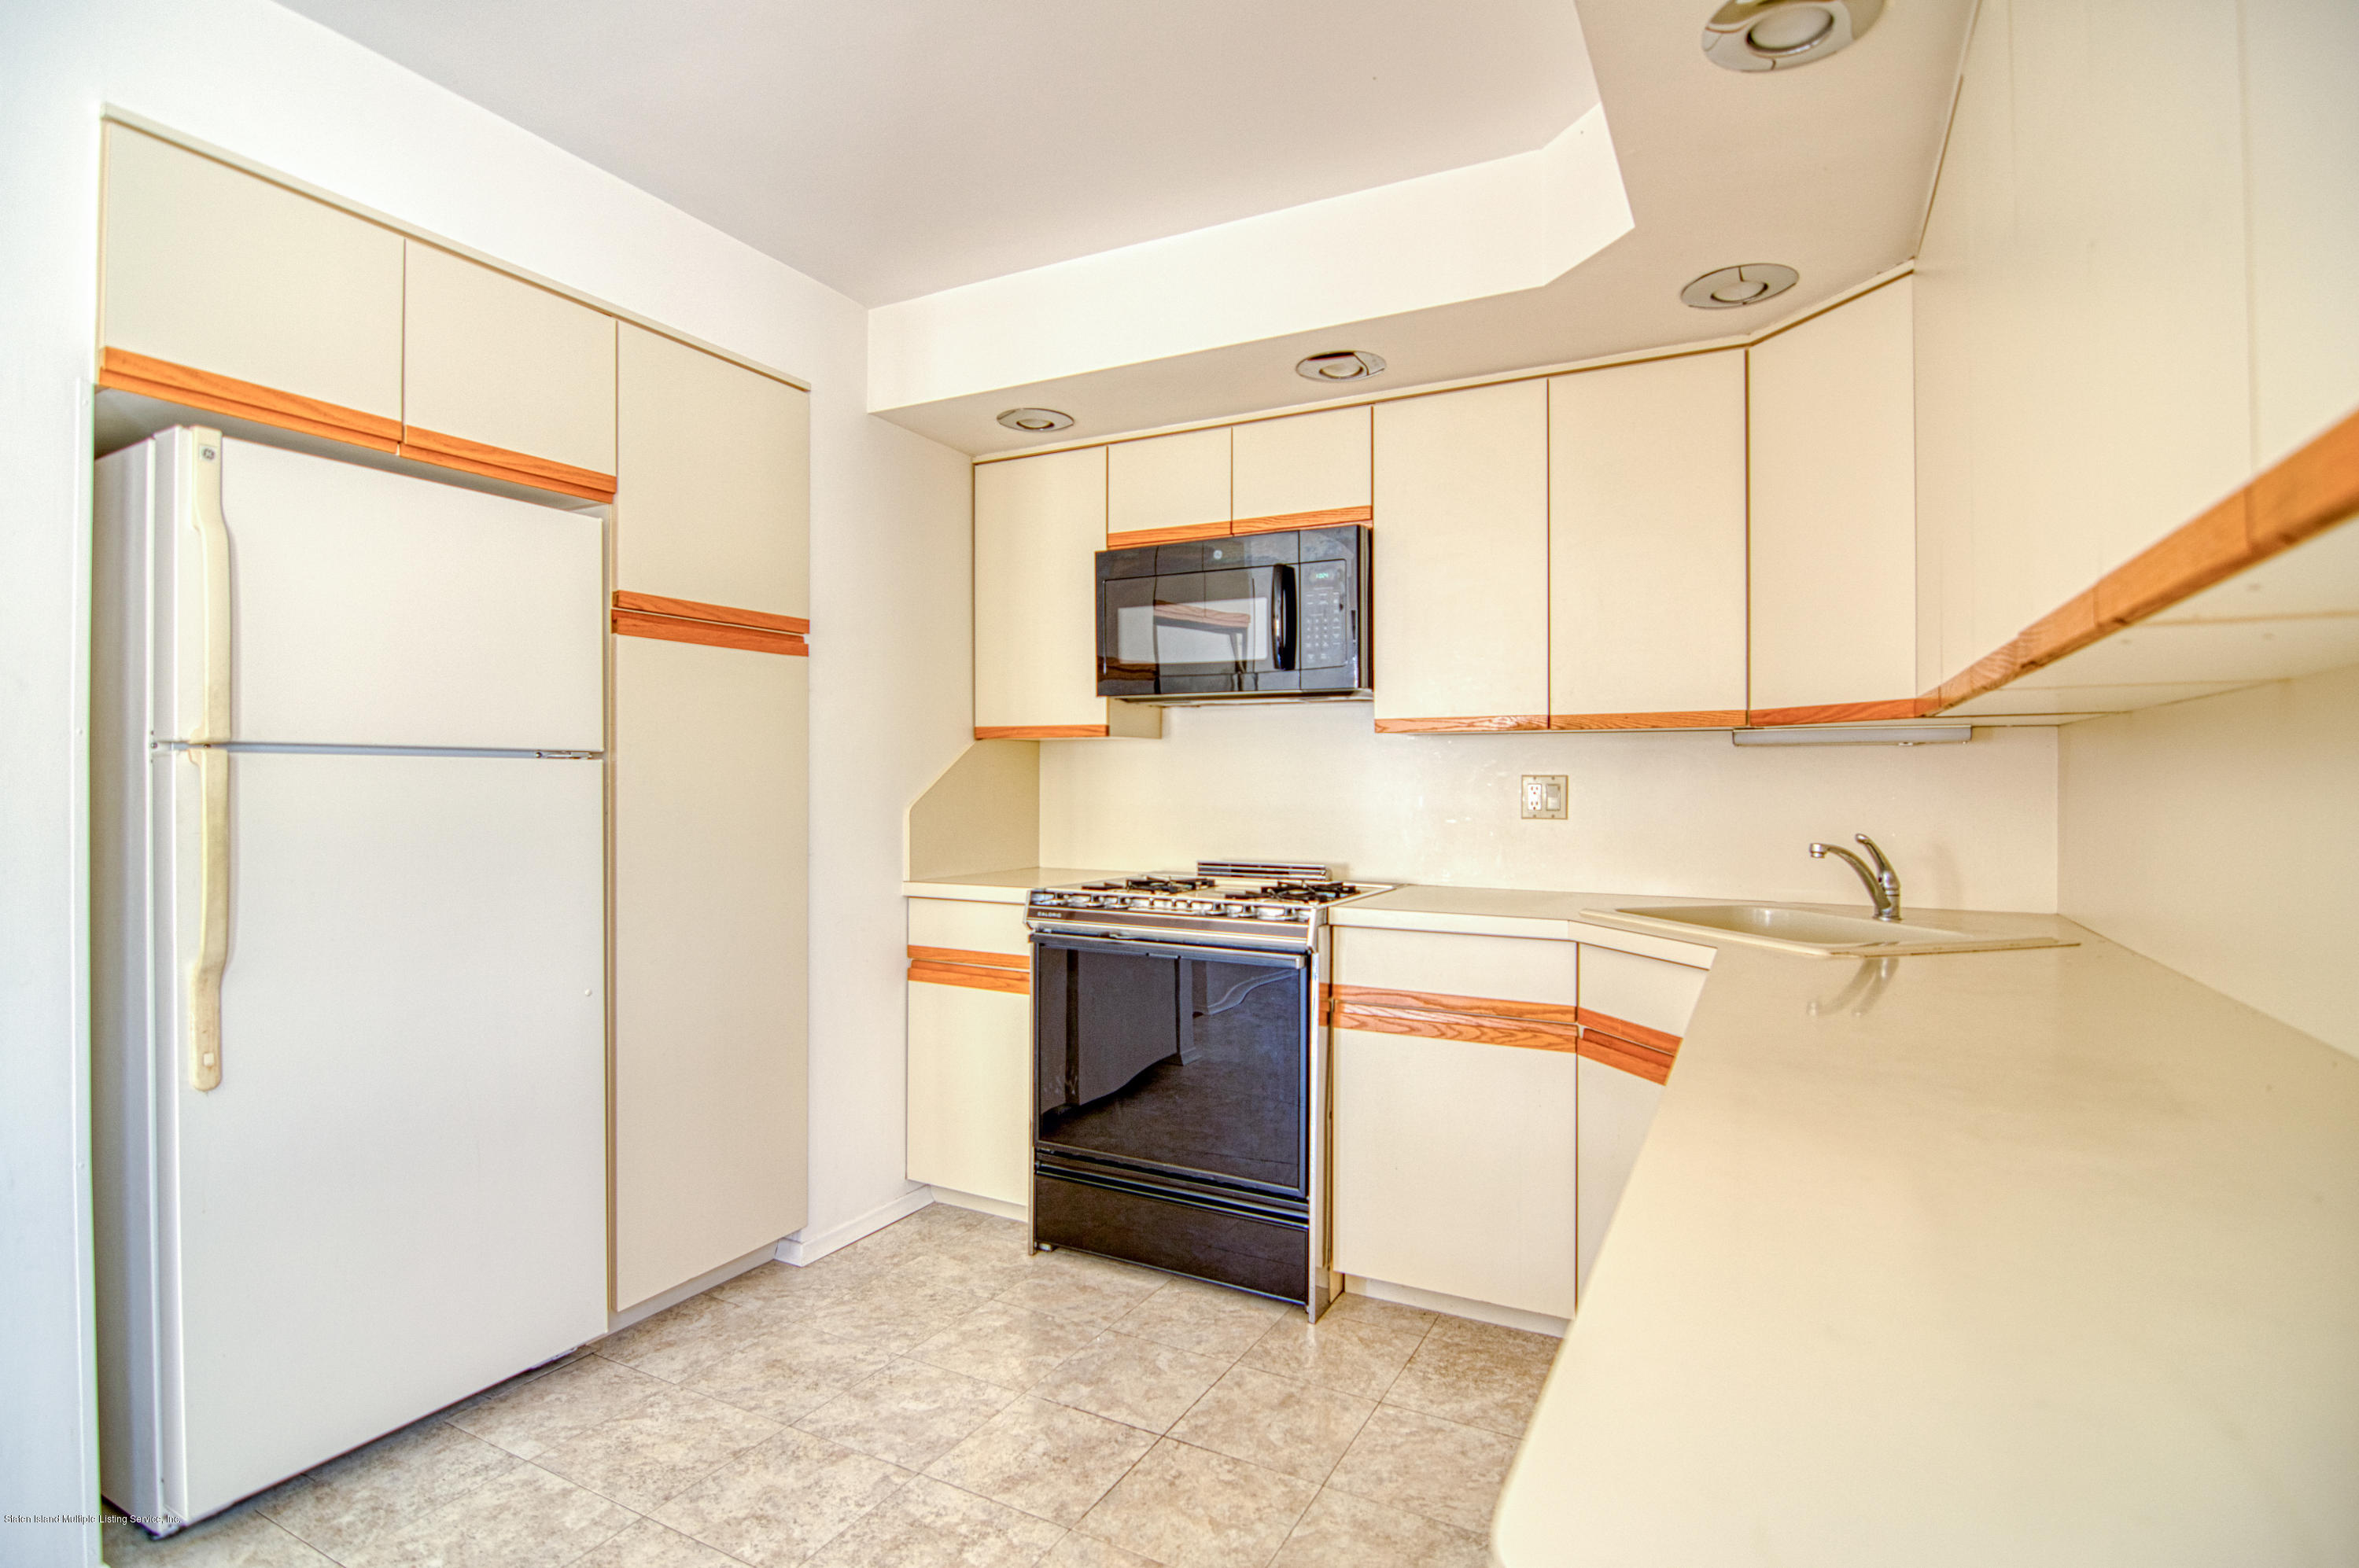 Single Family - Detached 124 Queen Street  Staten Island, NY 10314, MLS-1131413-7